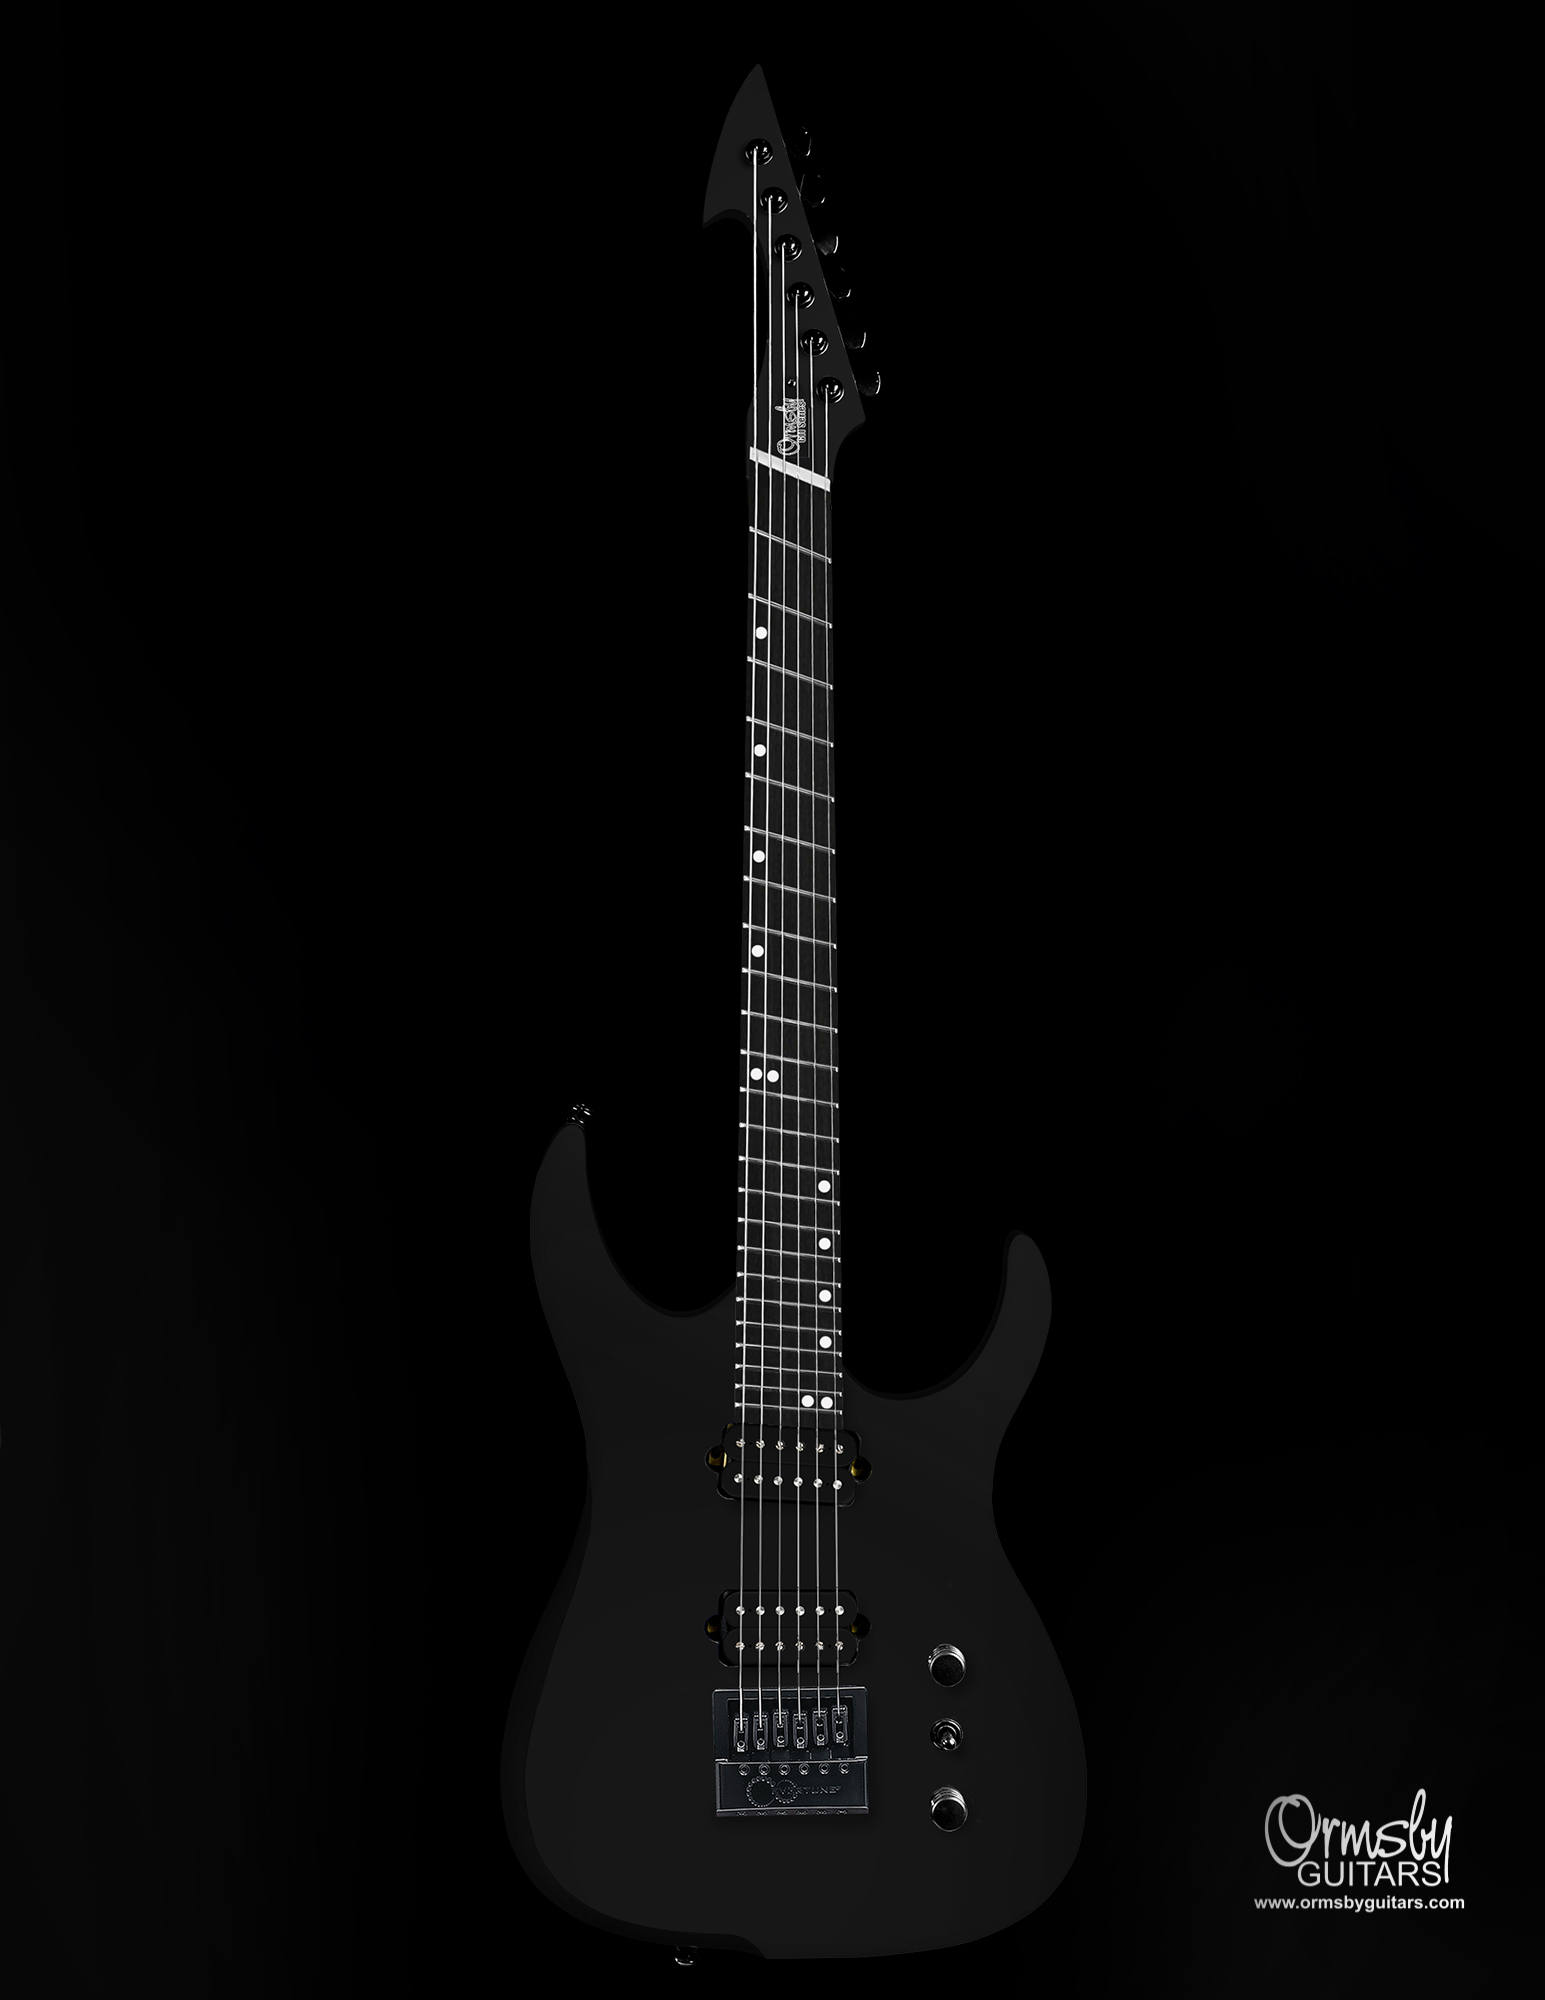 Ormsby Guitars GTI Hype